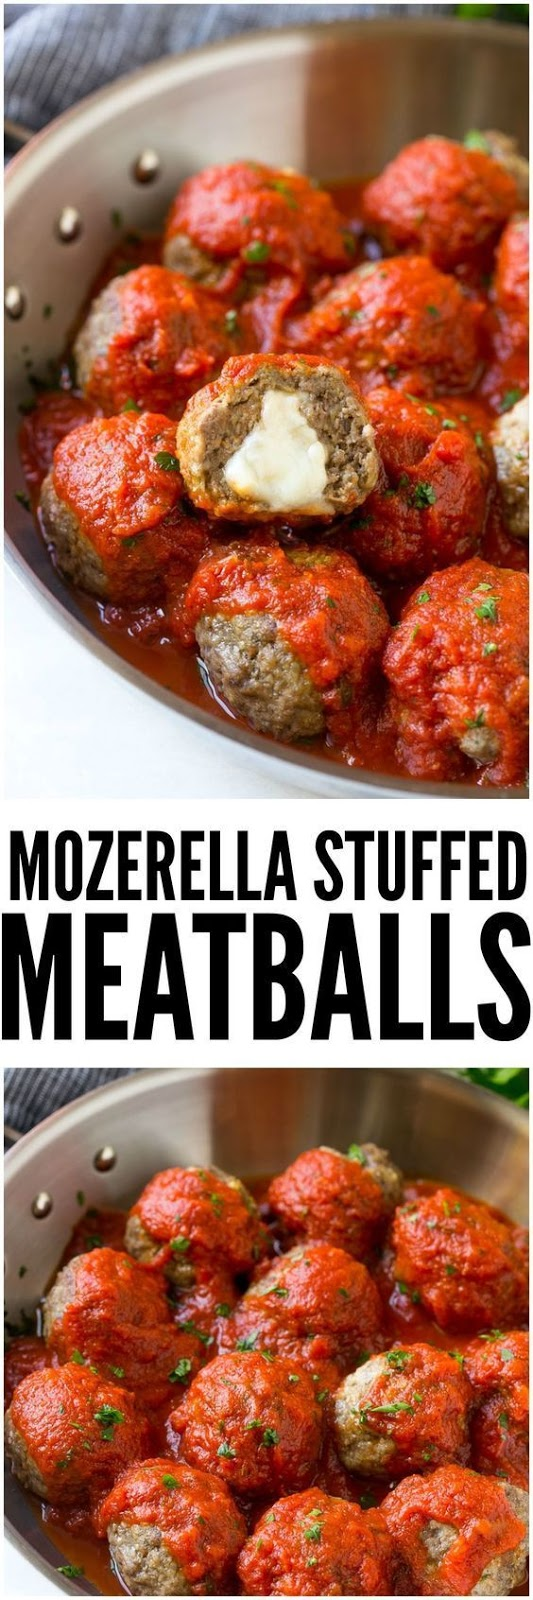 Mozzarella Stuffed Meatballs - Easy To Make - These mozzarella stuffed meatballs are a fun twist on the classic recipe - serve these meatballs as a party appetizer or over a big plate of spaghetti for a hearty meal! #mozzarella #stuffed #meatballs #dinnerrecipe #appetizerrecipe #summerrecipe #summerfood